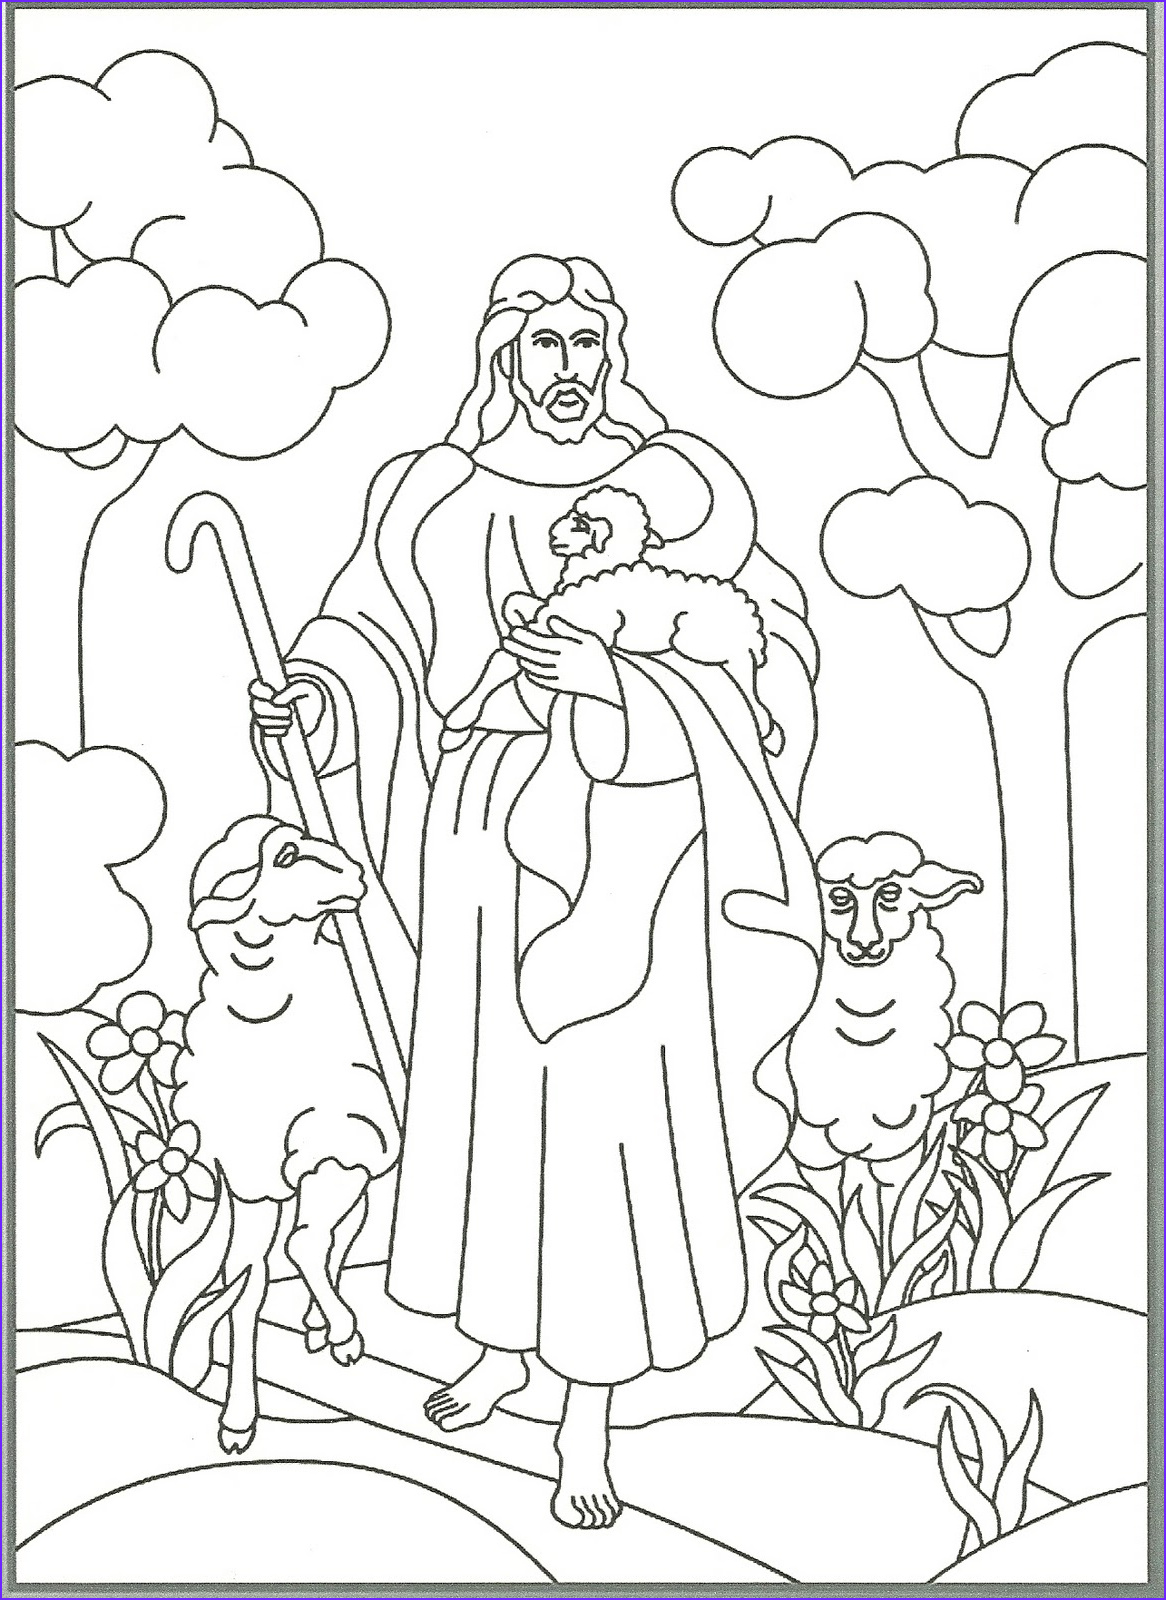 Jesus the Good Shepherd Coloring Page Awesome Collection Happy Clean Living Primary 2 Lesson 23